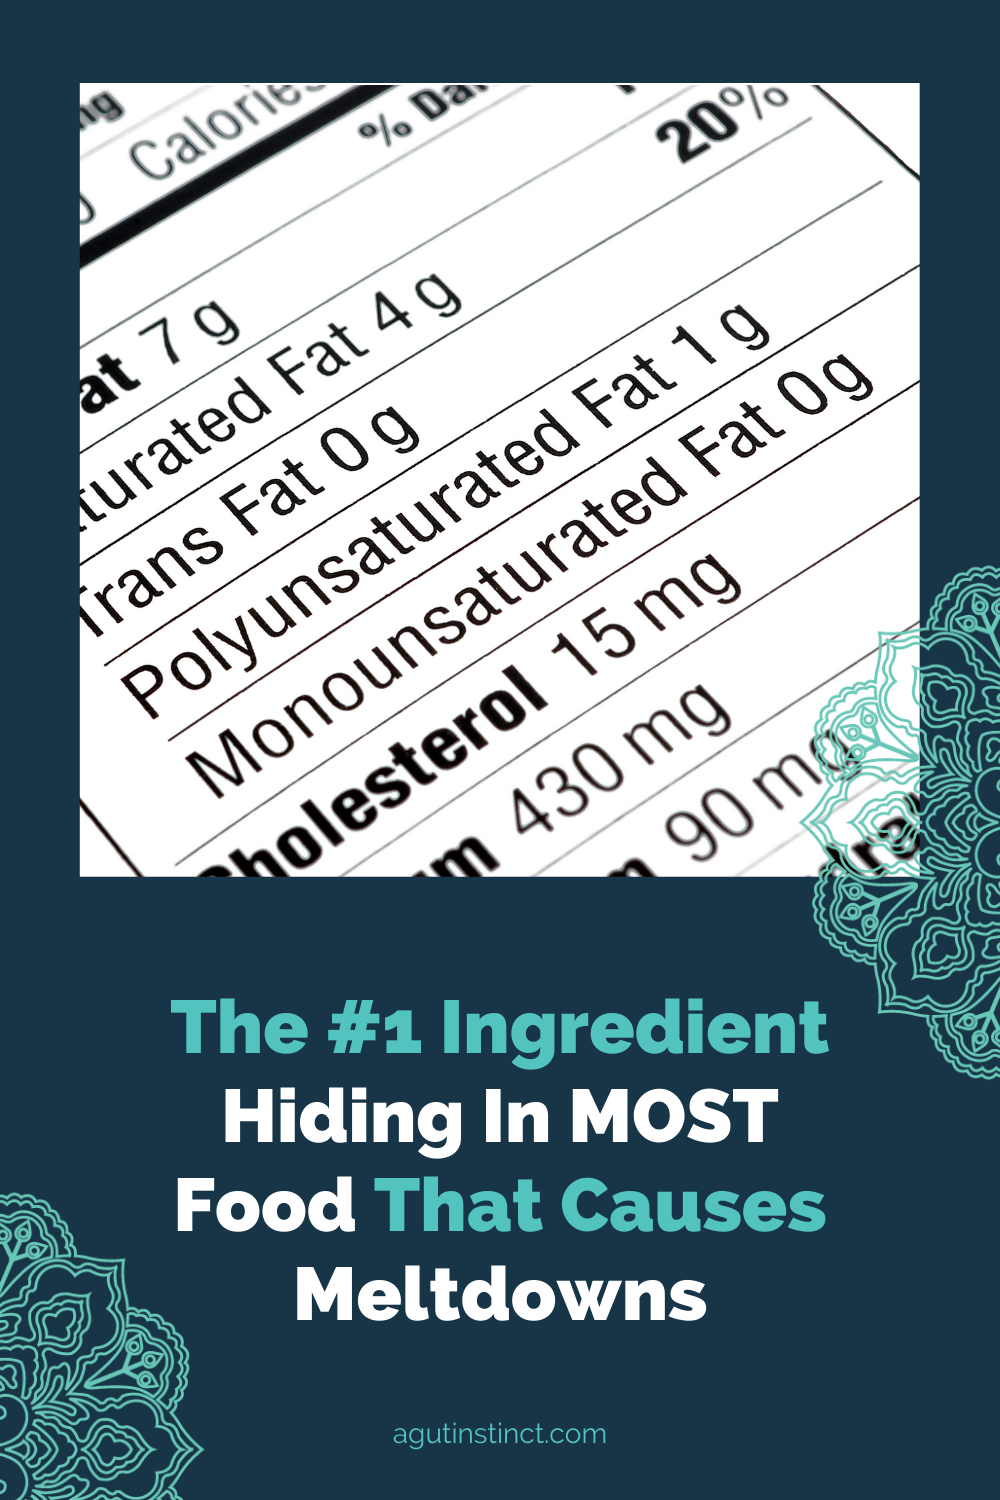 Photo of a nutritional label and these words underneath - The #1 Ingredient Hiding In MOST Food That Causes Meltdowns